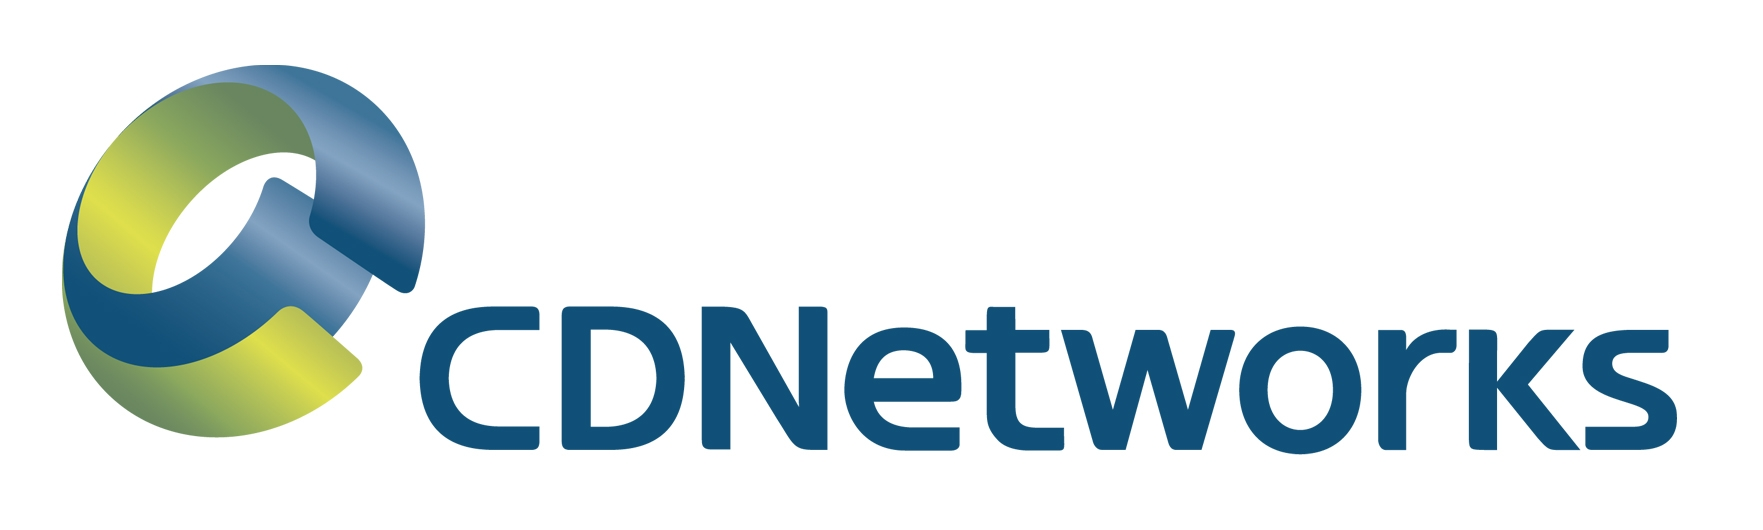 CDNETWORKS the CDN for when fast is not enough